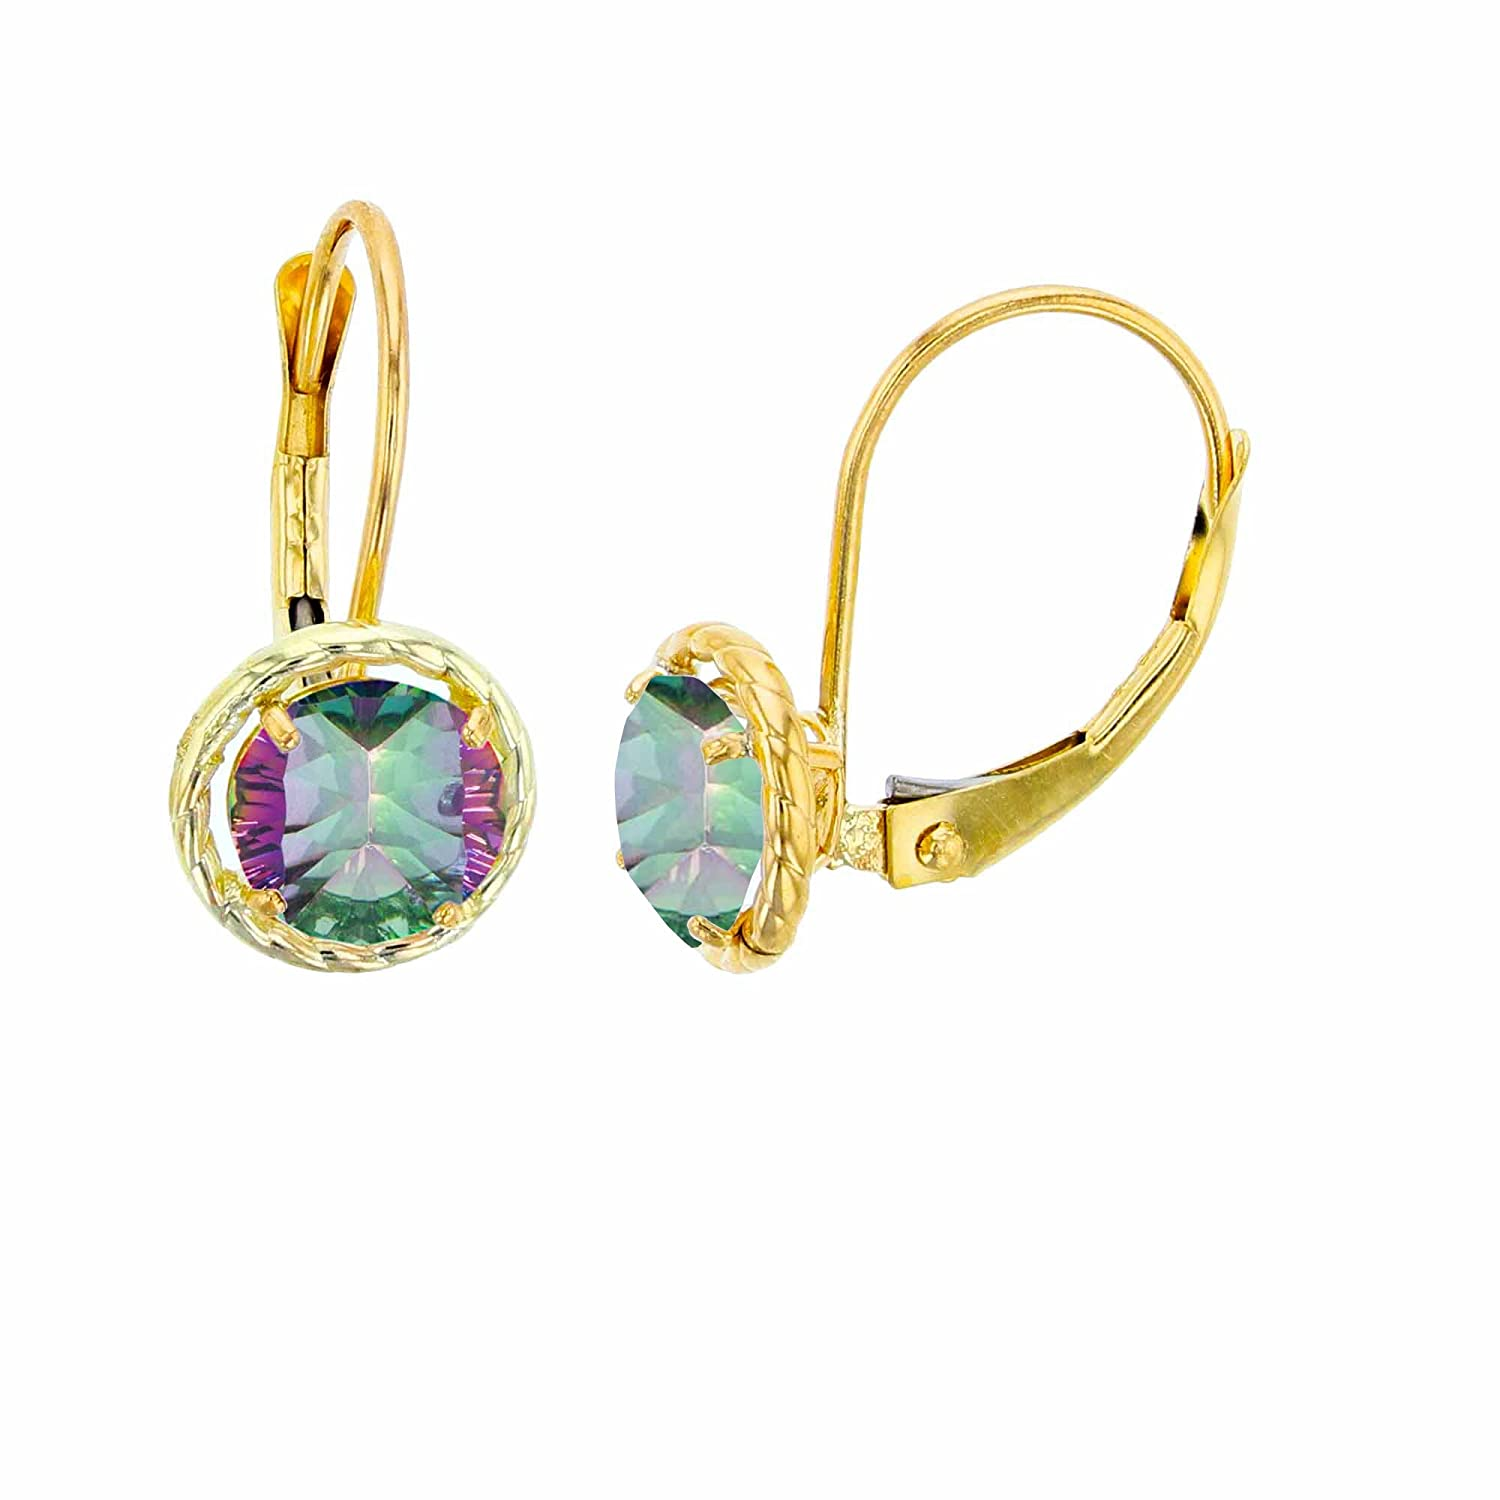 10K Yellow Gold 5mm Round Gemstone Center Stone Rope Frame Leverback Earring